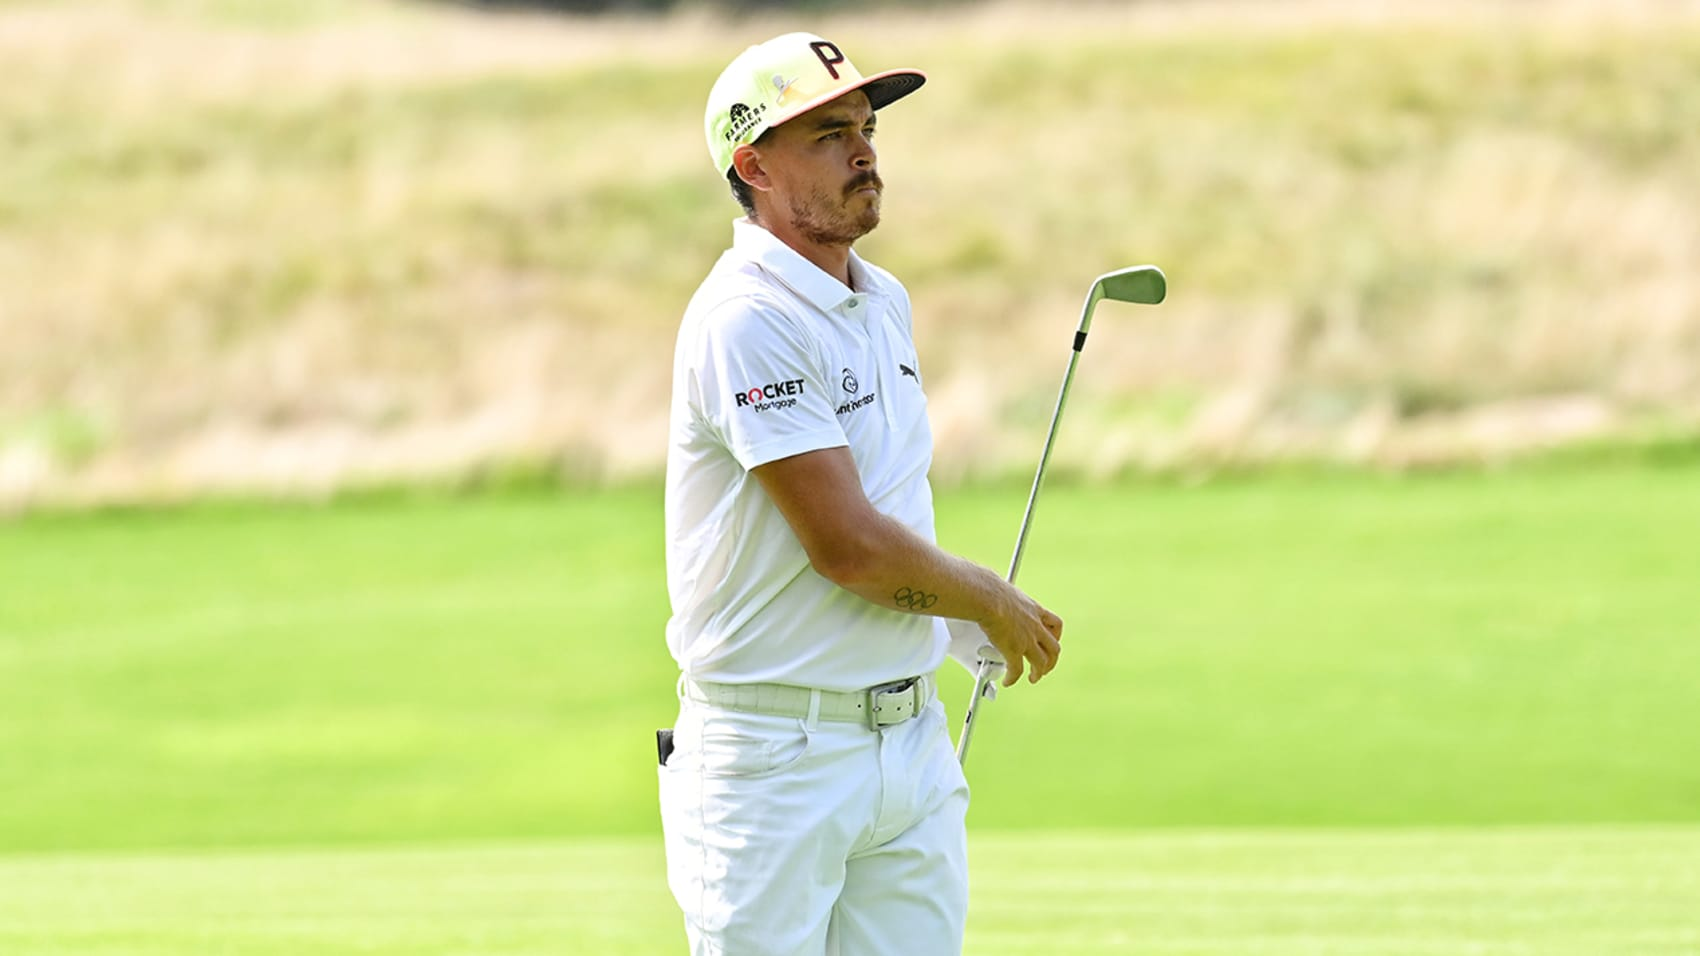 Rickie Fowler's 30-foot birdie chip shot for the Shot of the Day